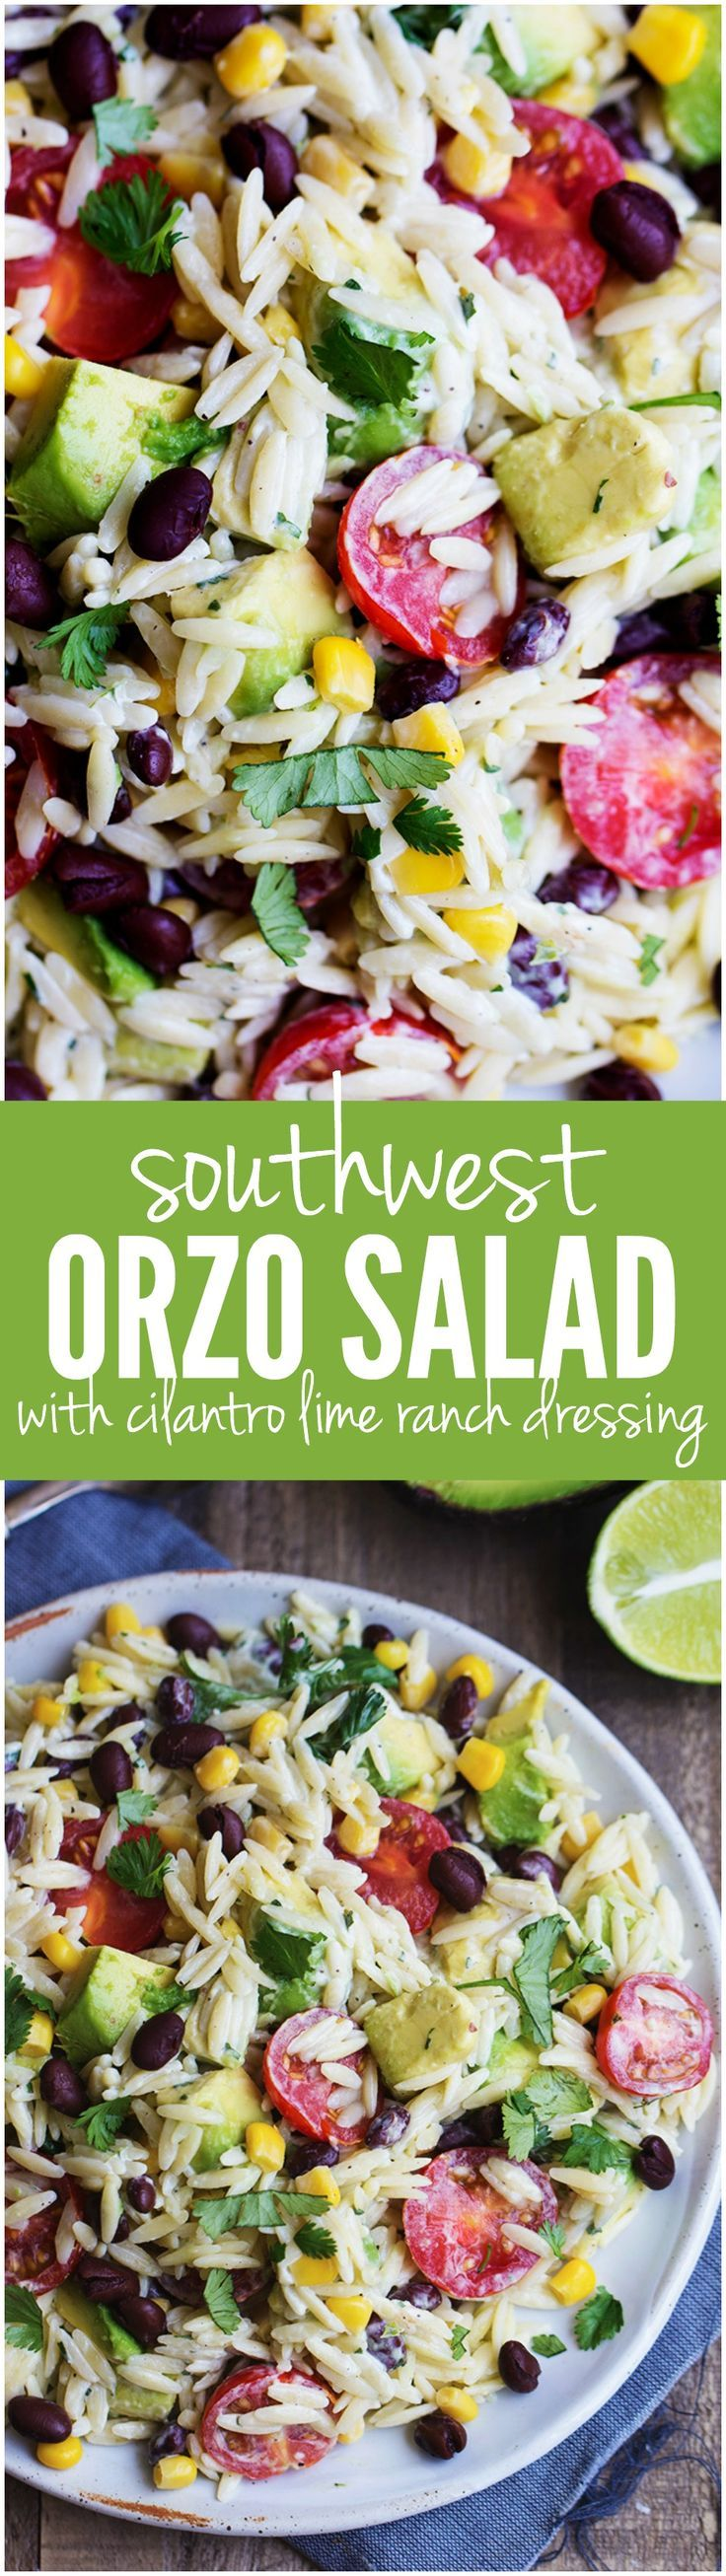 This southwest orzo salad is filled with so many delicious flavors and textures and topped with a creamy cilantro lime ranch dressing!